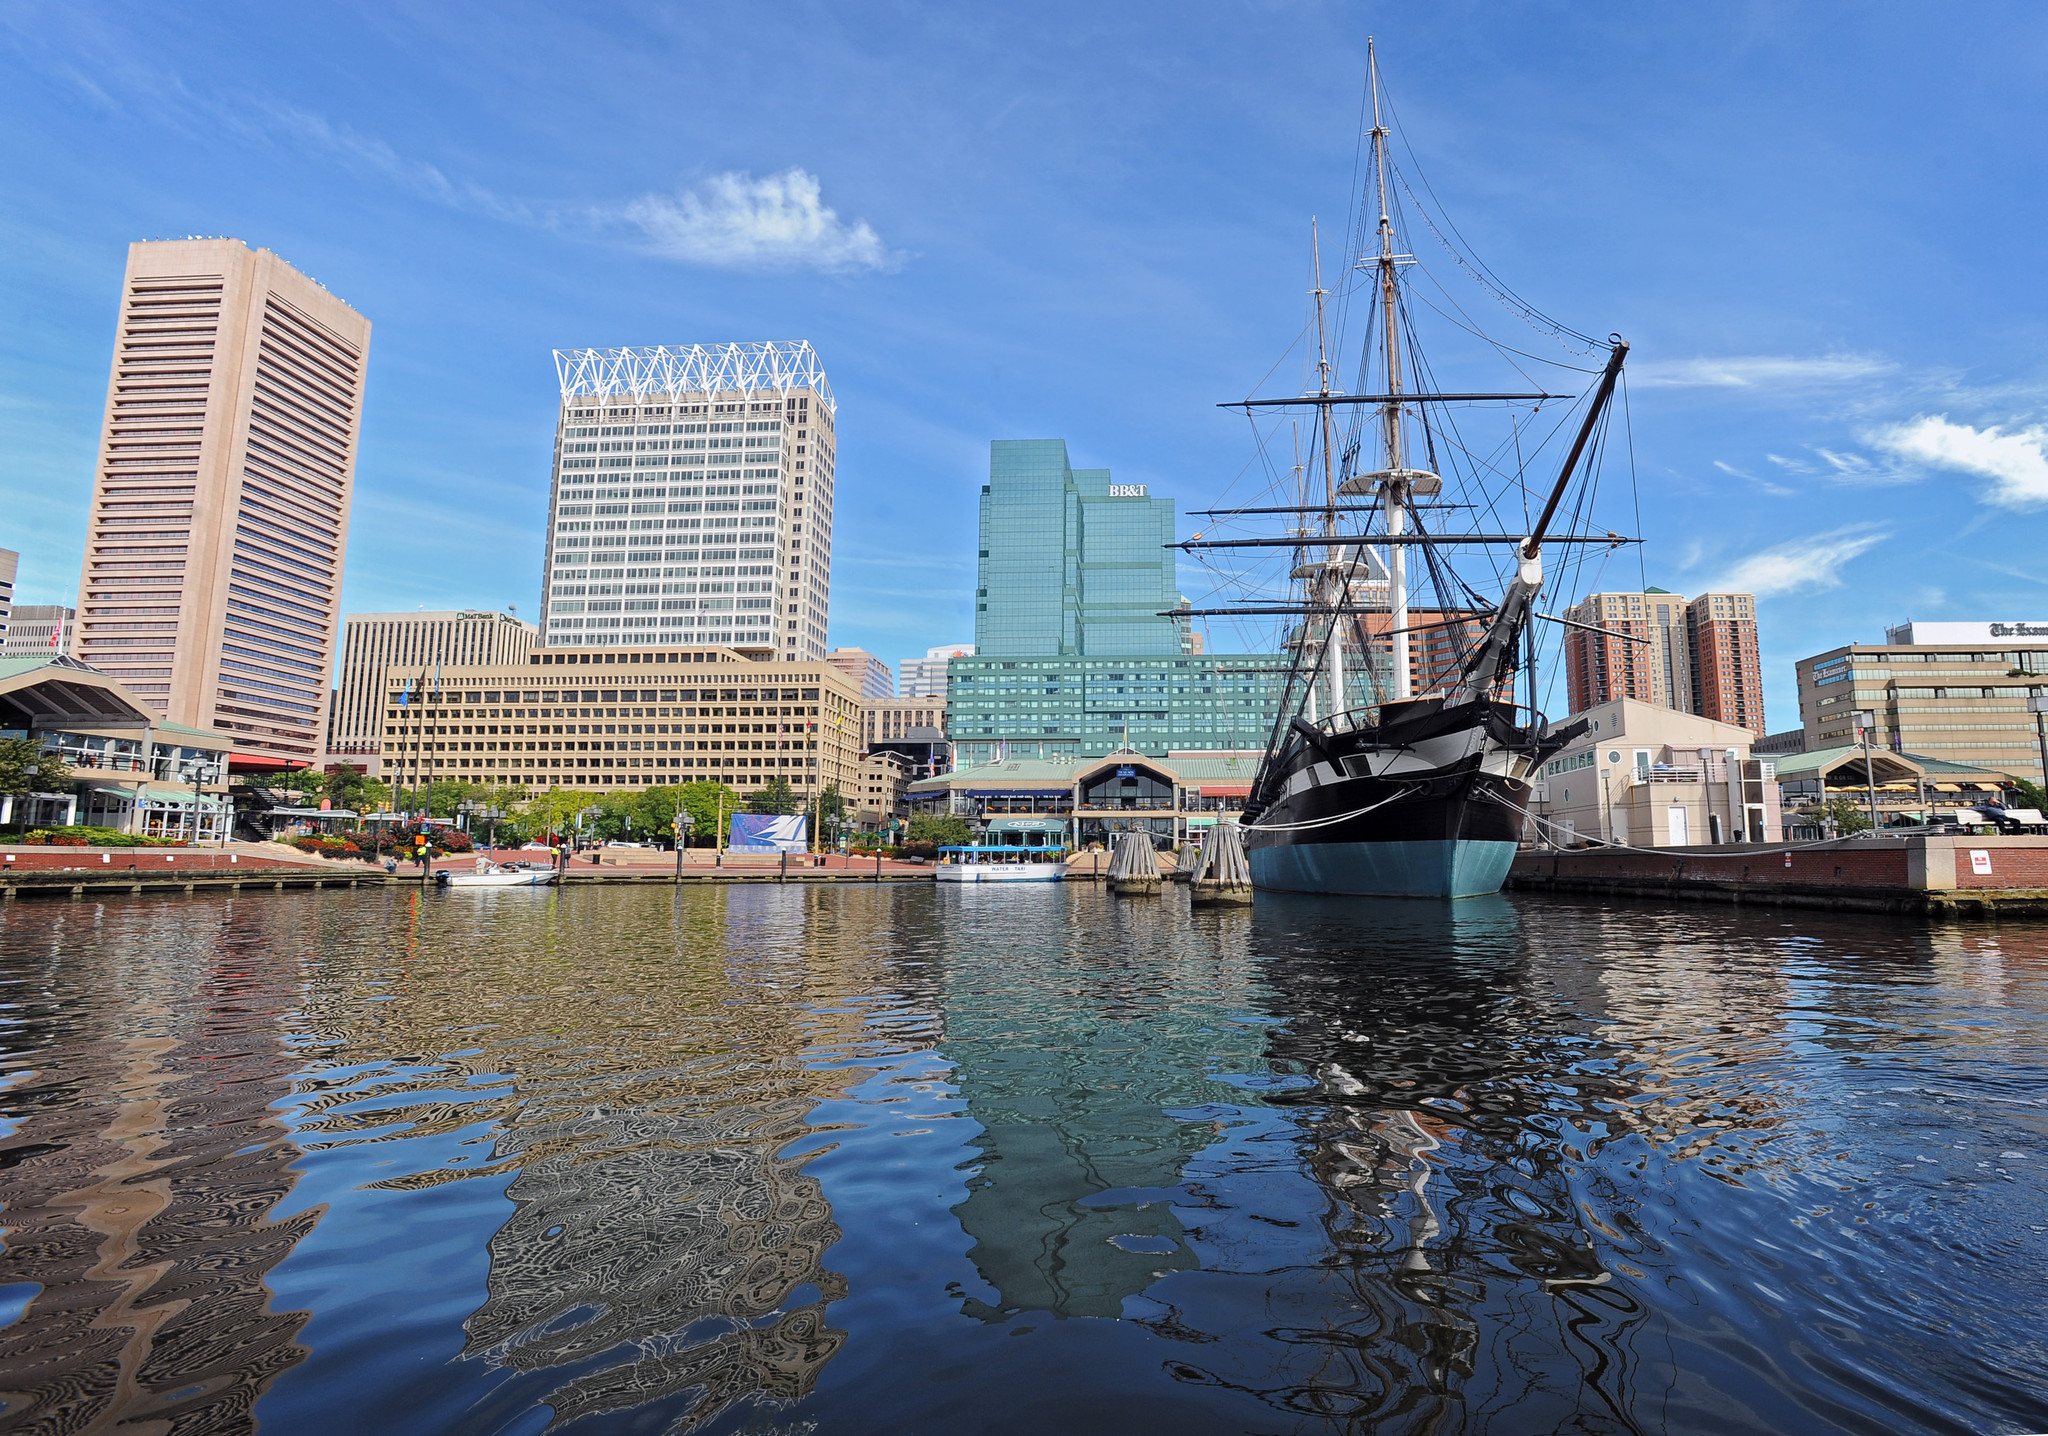 Video shows people swimming in Baltimore Inner Harbor waters ...